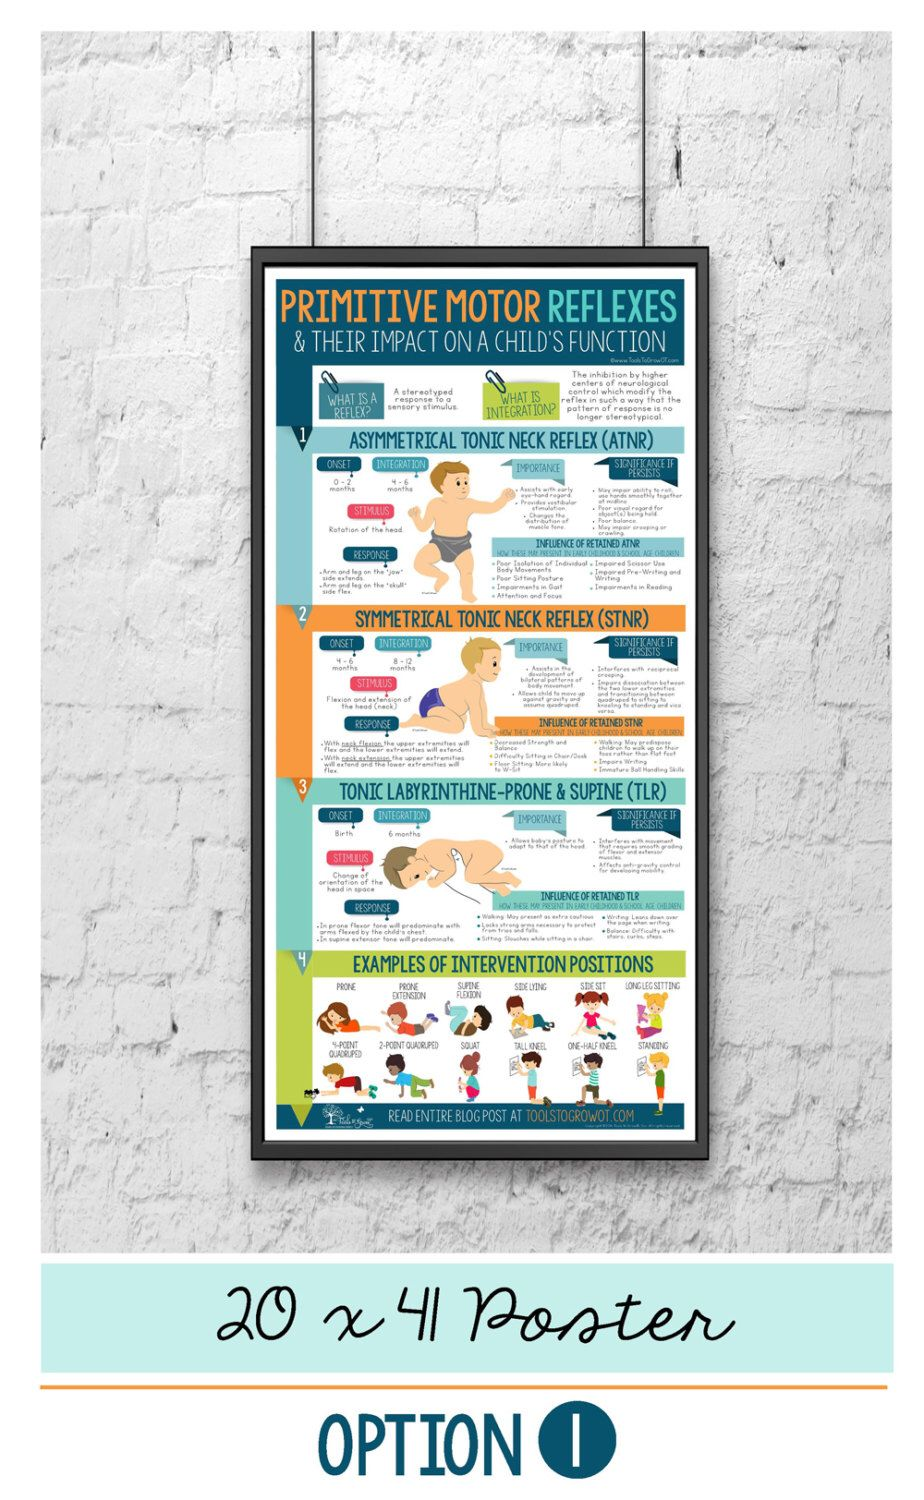 Article on physical therapy - Reflex Infographic Poster And Article Occupational Therapy Physical Therapy